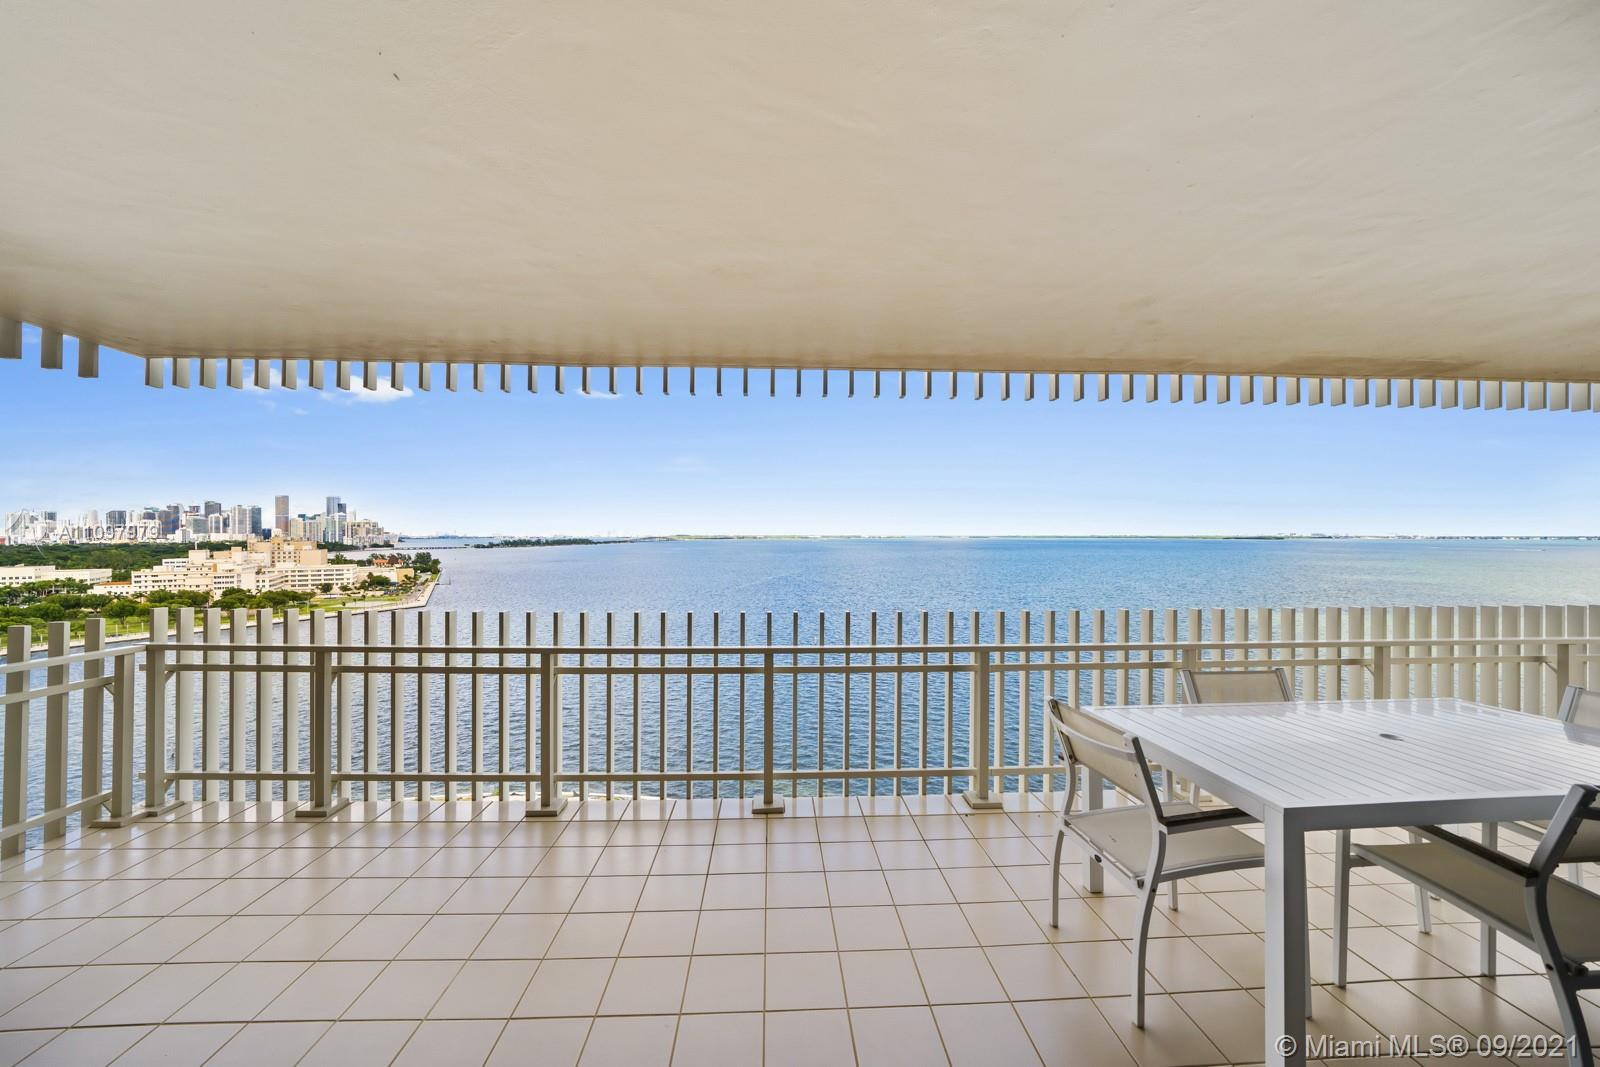 Spectacular views of the Miami Skyline, Coconut Grove, Key Biscayne and Miami Beach. Large 3 bedroom 2.5 bath, comes fully furnished and offers a spacious living area to enjoy the endless views of the marina and sunset from every room. Separate dining area with balcony access and plenty of closet space. Relax in your expansive master suite with huge walk in closet and ensuite bath. Grove Isle offers luxury amenities including pool overlooking Biscayne Bay, gym, hotel/restaurant, spa, multiple tennis courts, private marina etc. Grove Isle is one of the most secluded islands in all of Miami. Available for 6 month lease.